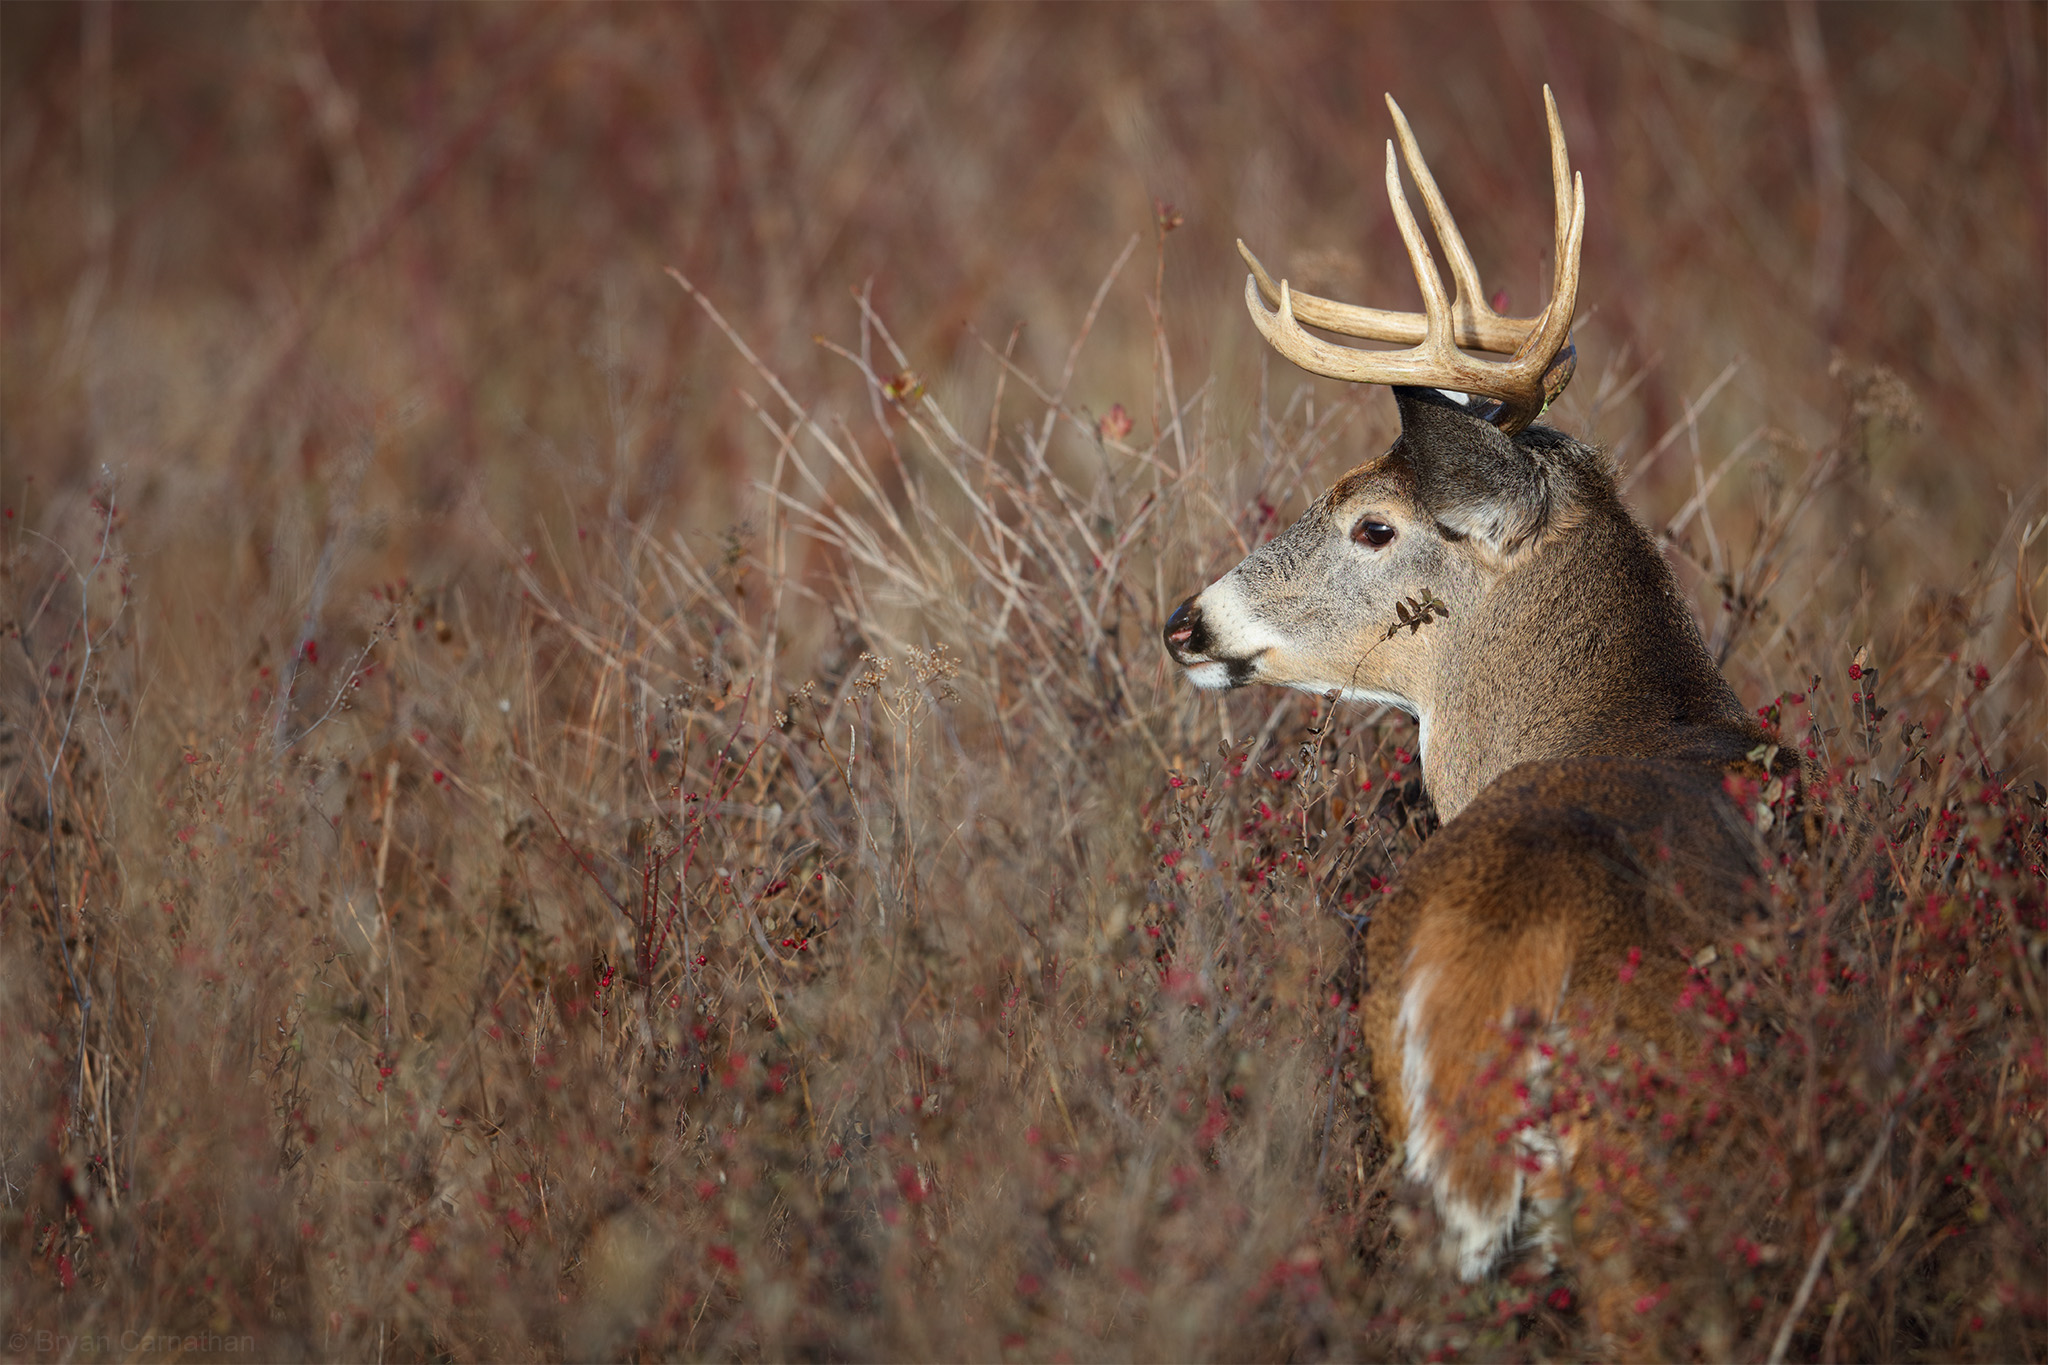 affordable whitetail hunting trips can be had for less than a club membership